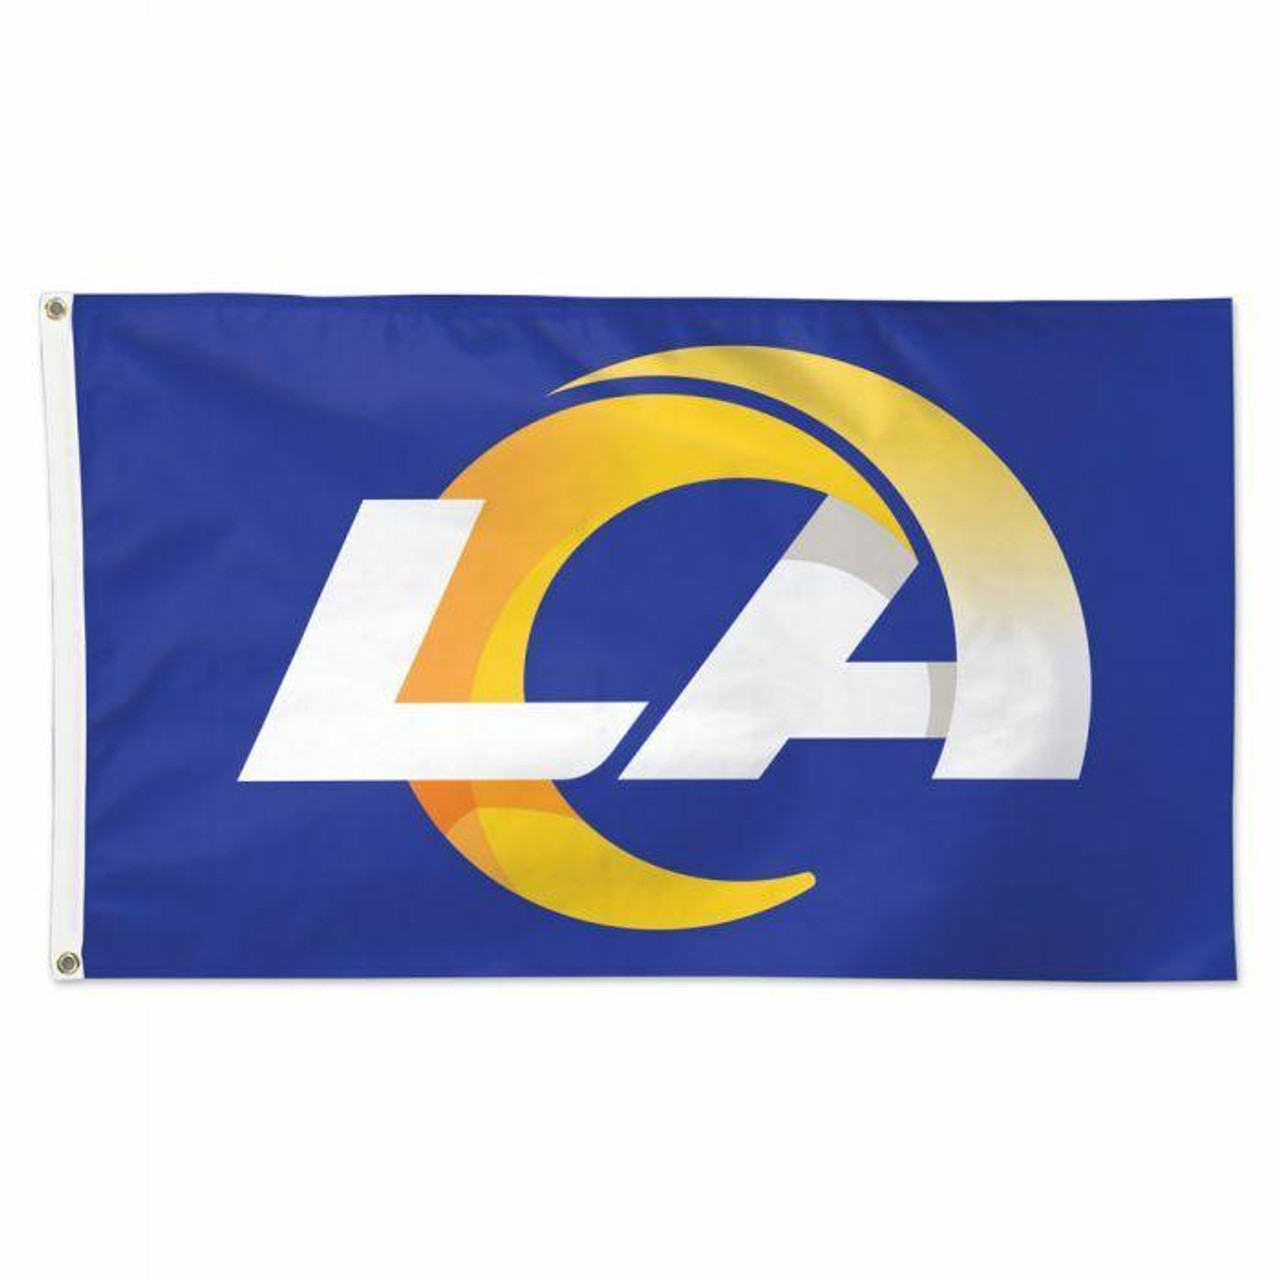 This flag has a bluish purple background with white LA and a yellow ram from the A